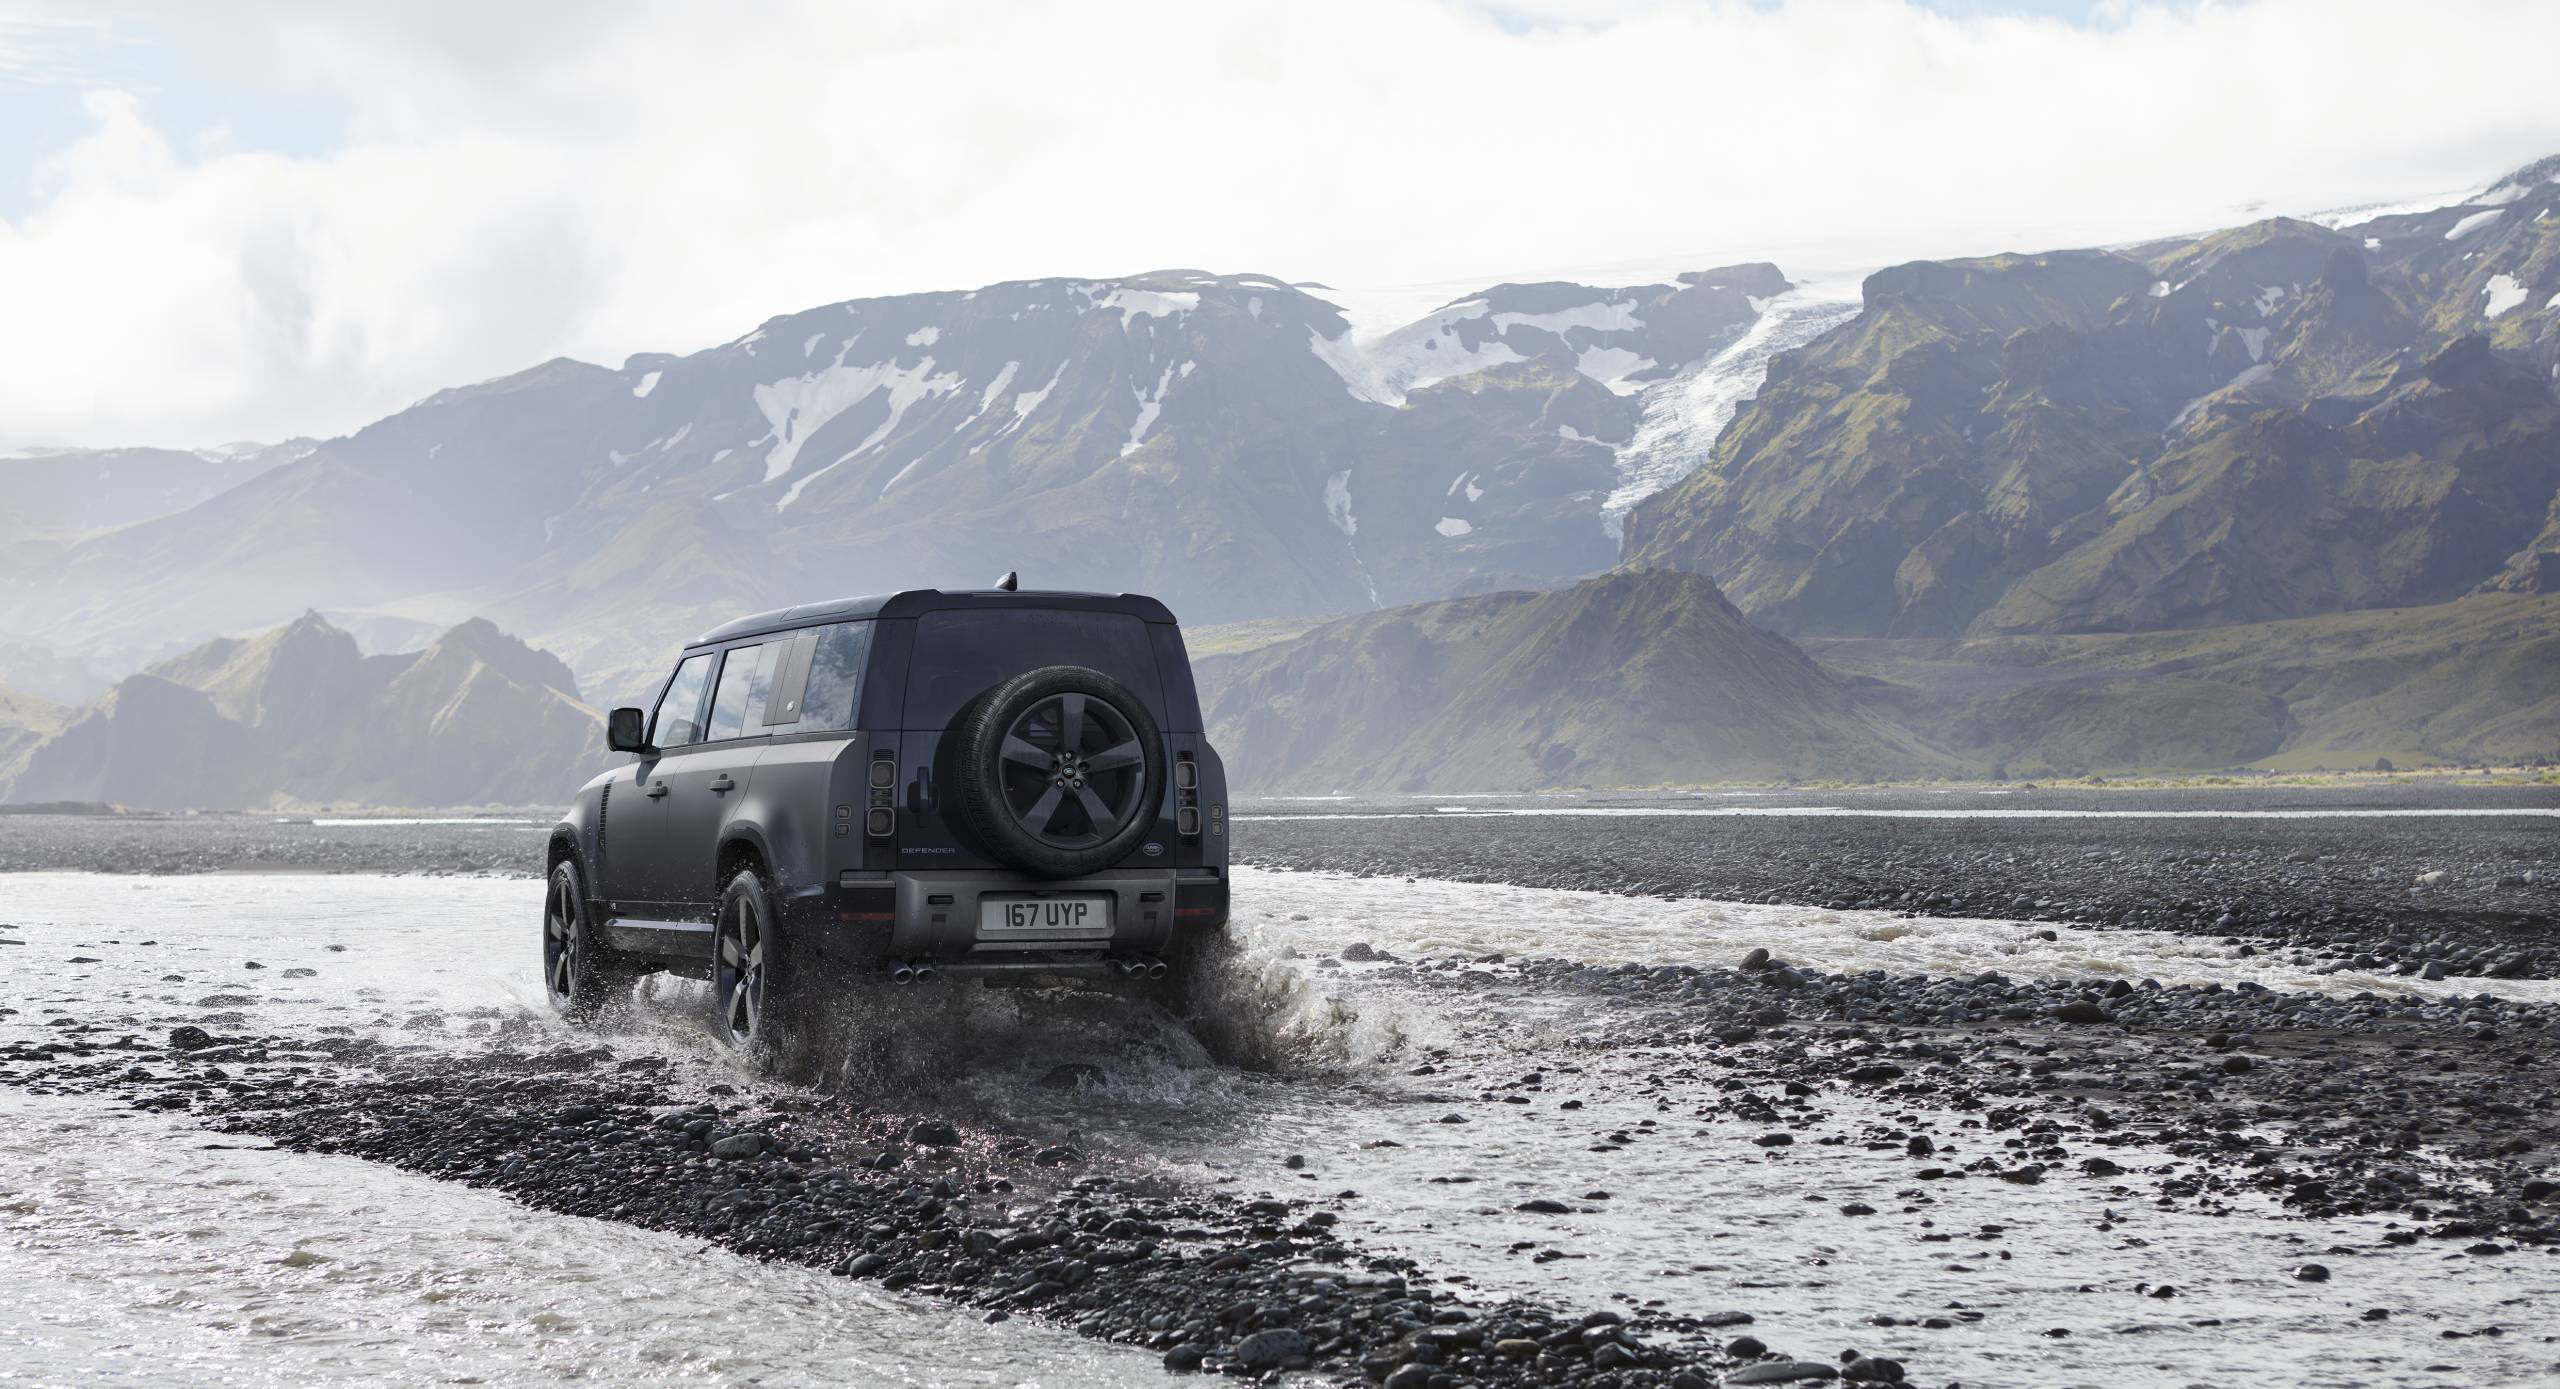 2022 Land Rover Defender 110 V8 Carpathian Edition driving up a river in mountains